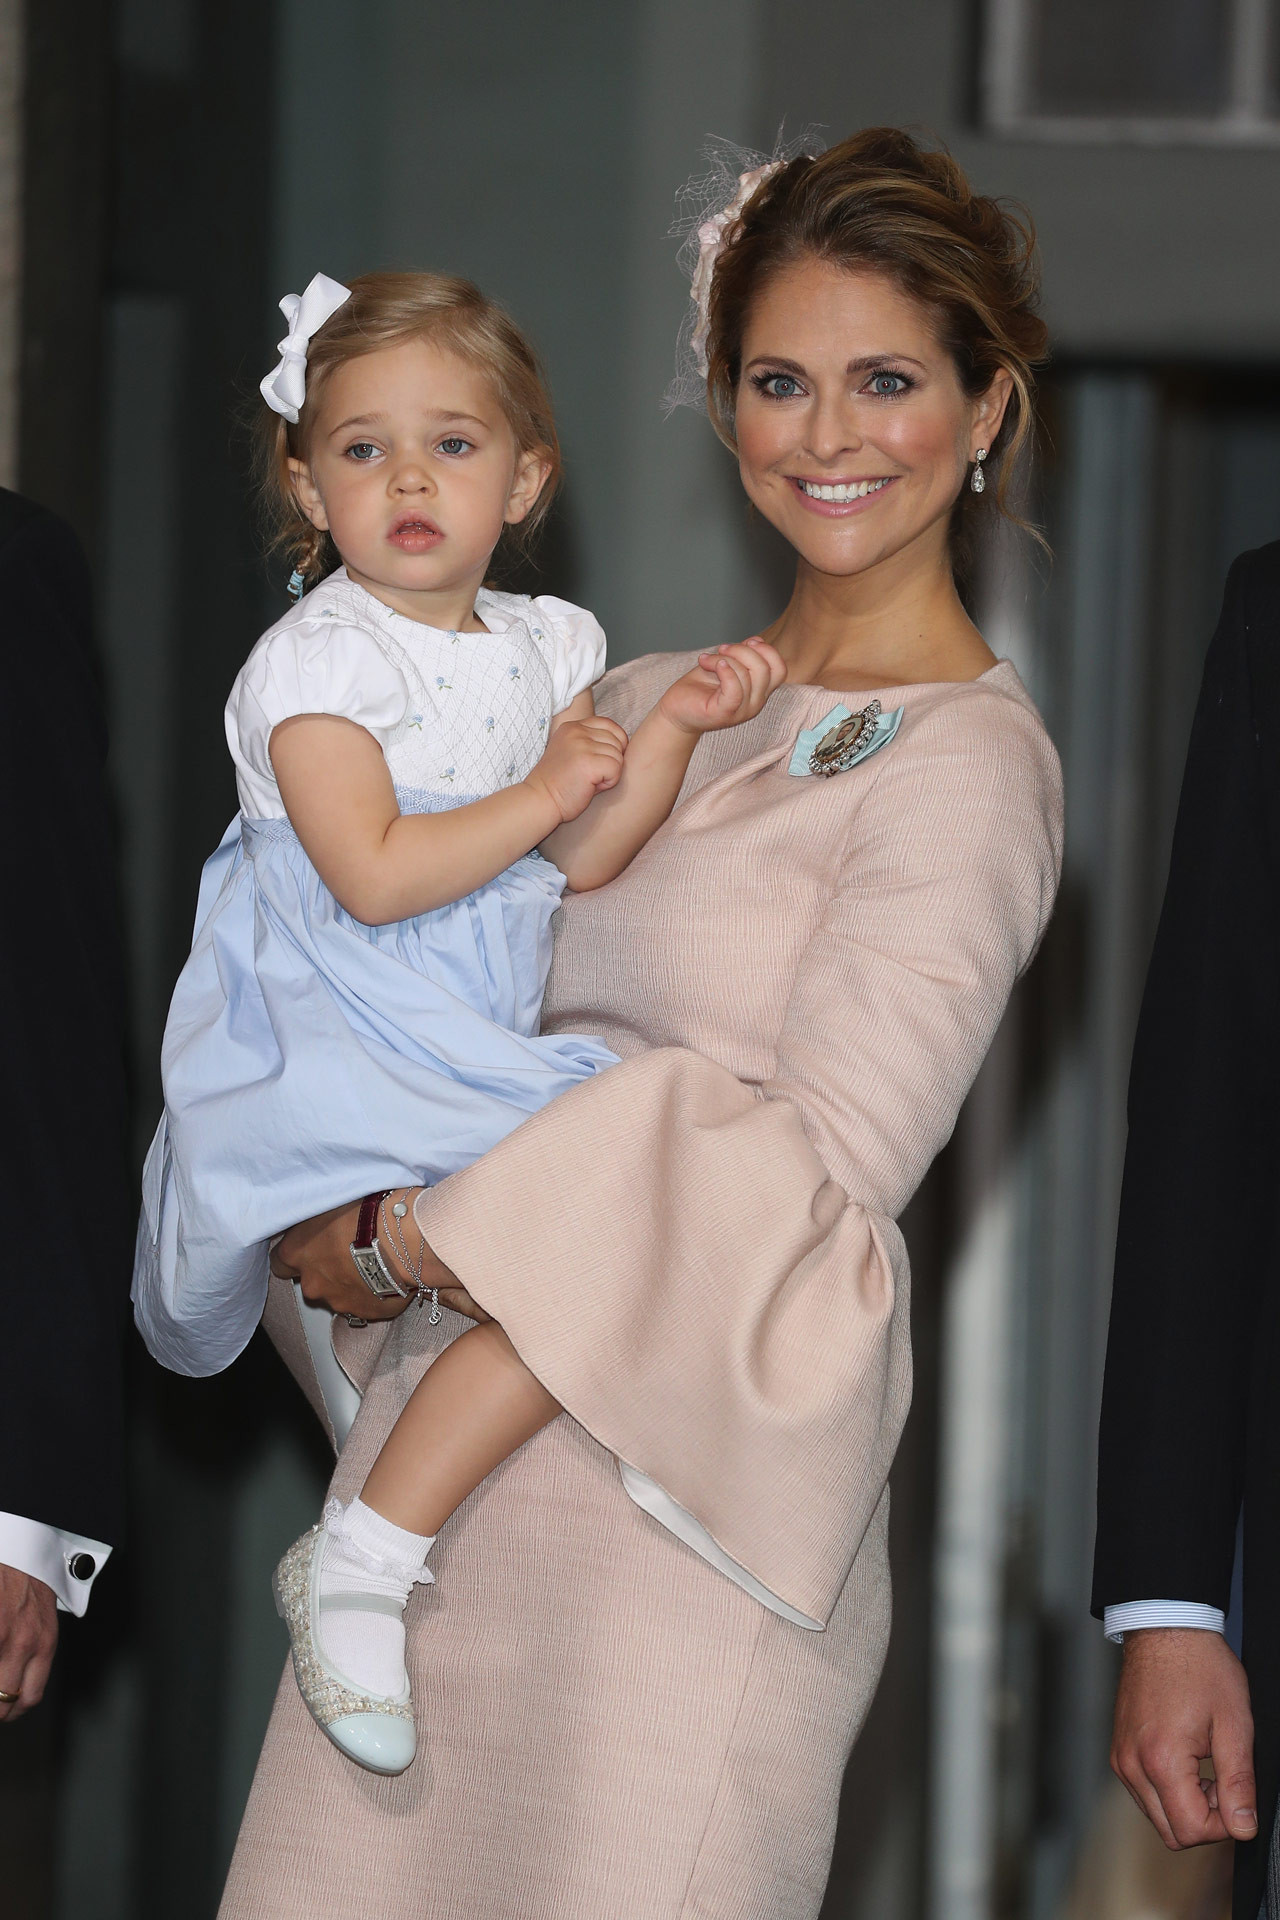 Princess Madeleine welcomes her third child and reveals the name